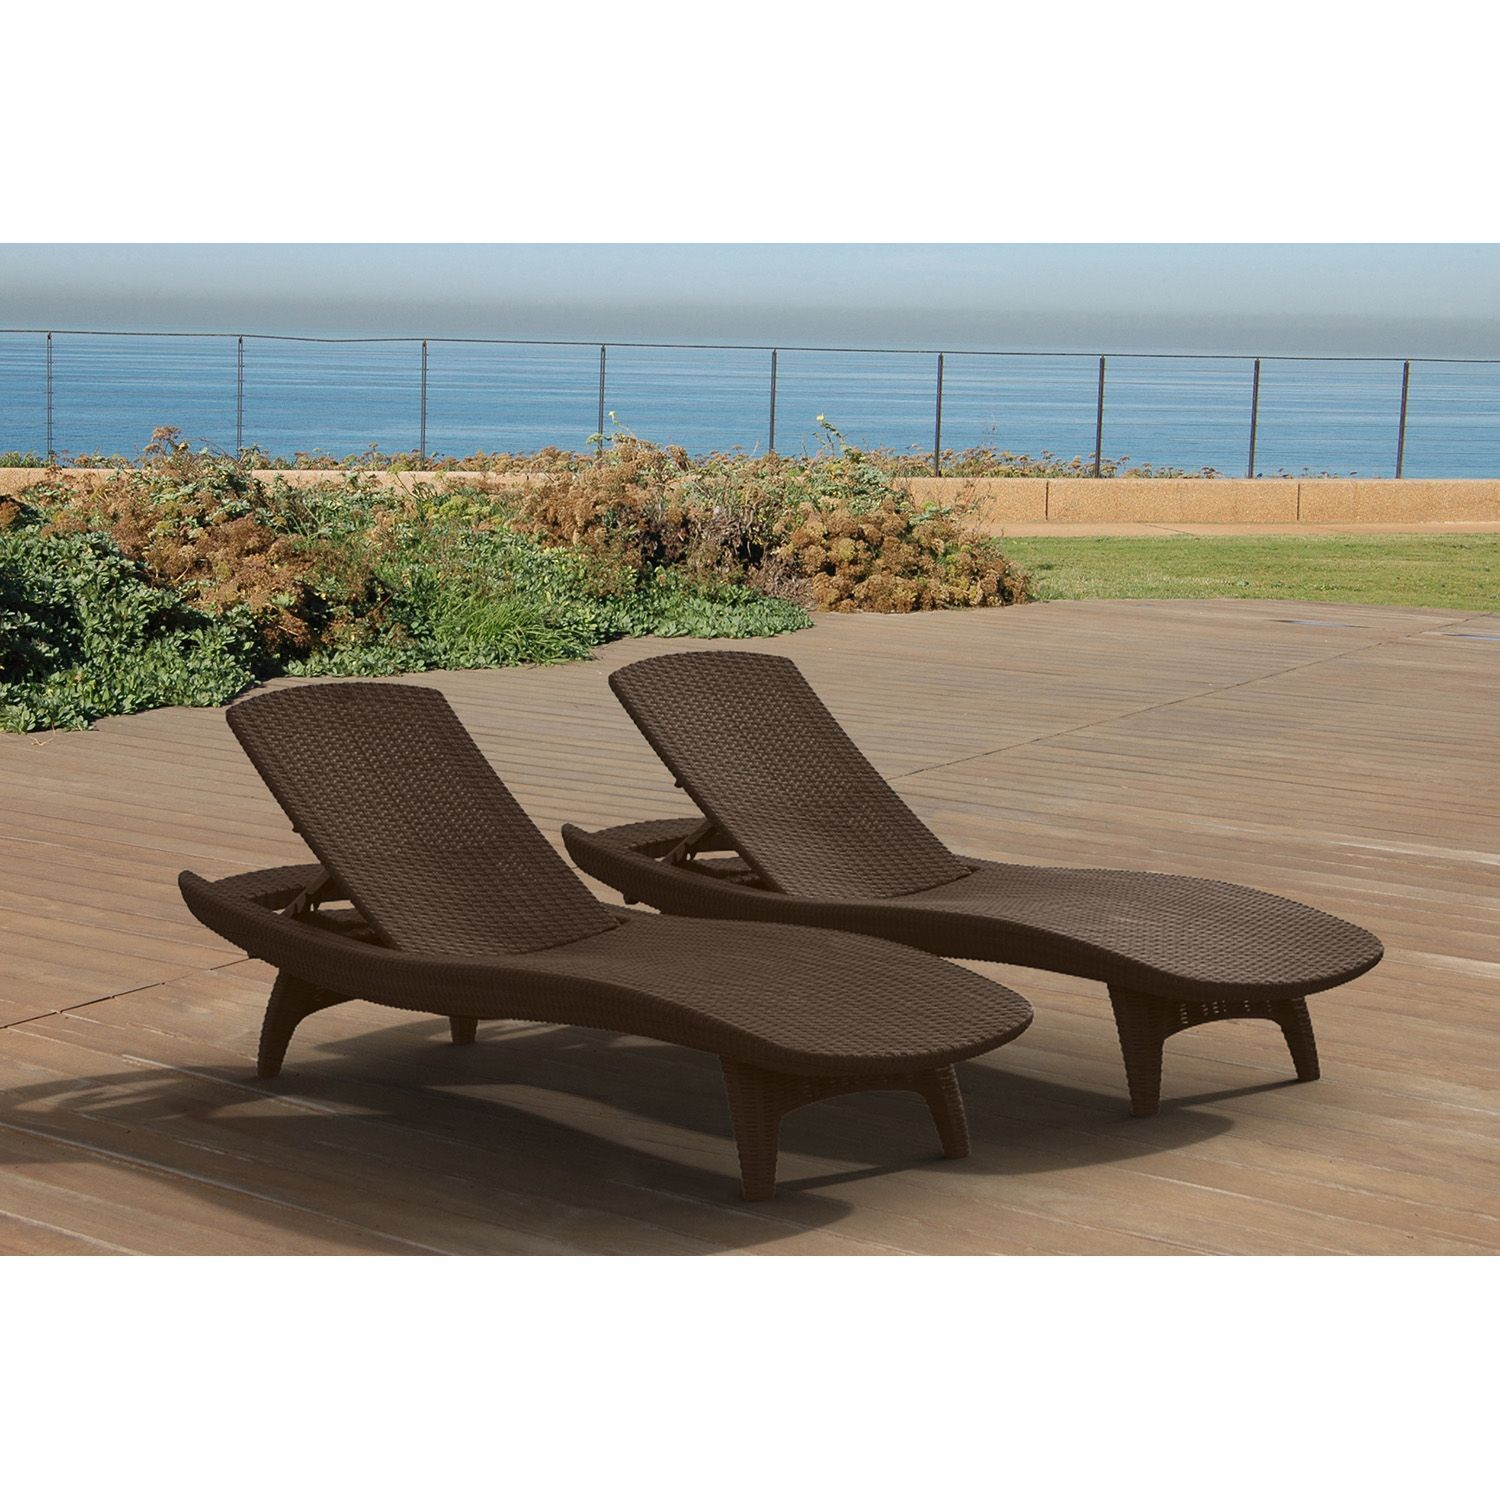 lounge chairs for patio. Keter 2-Pack Adjustable Chaise Lounge All-weather Outdoor Furniture, Brown - Sam\u0027s Chairs For Patio I